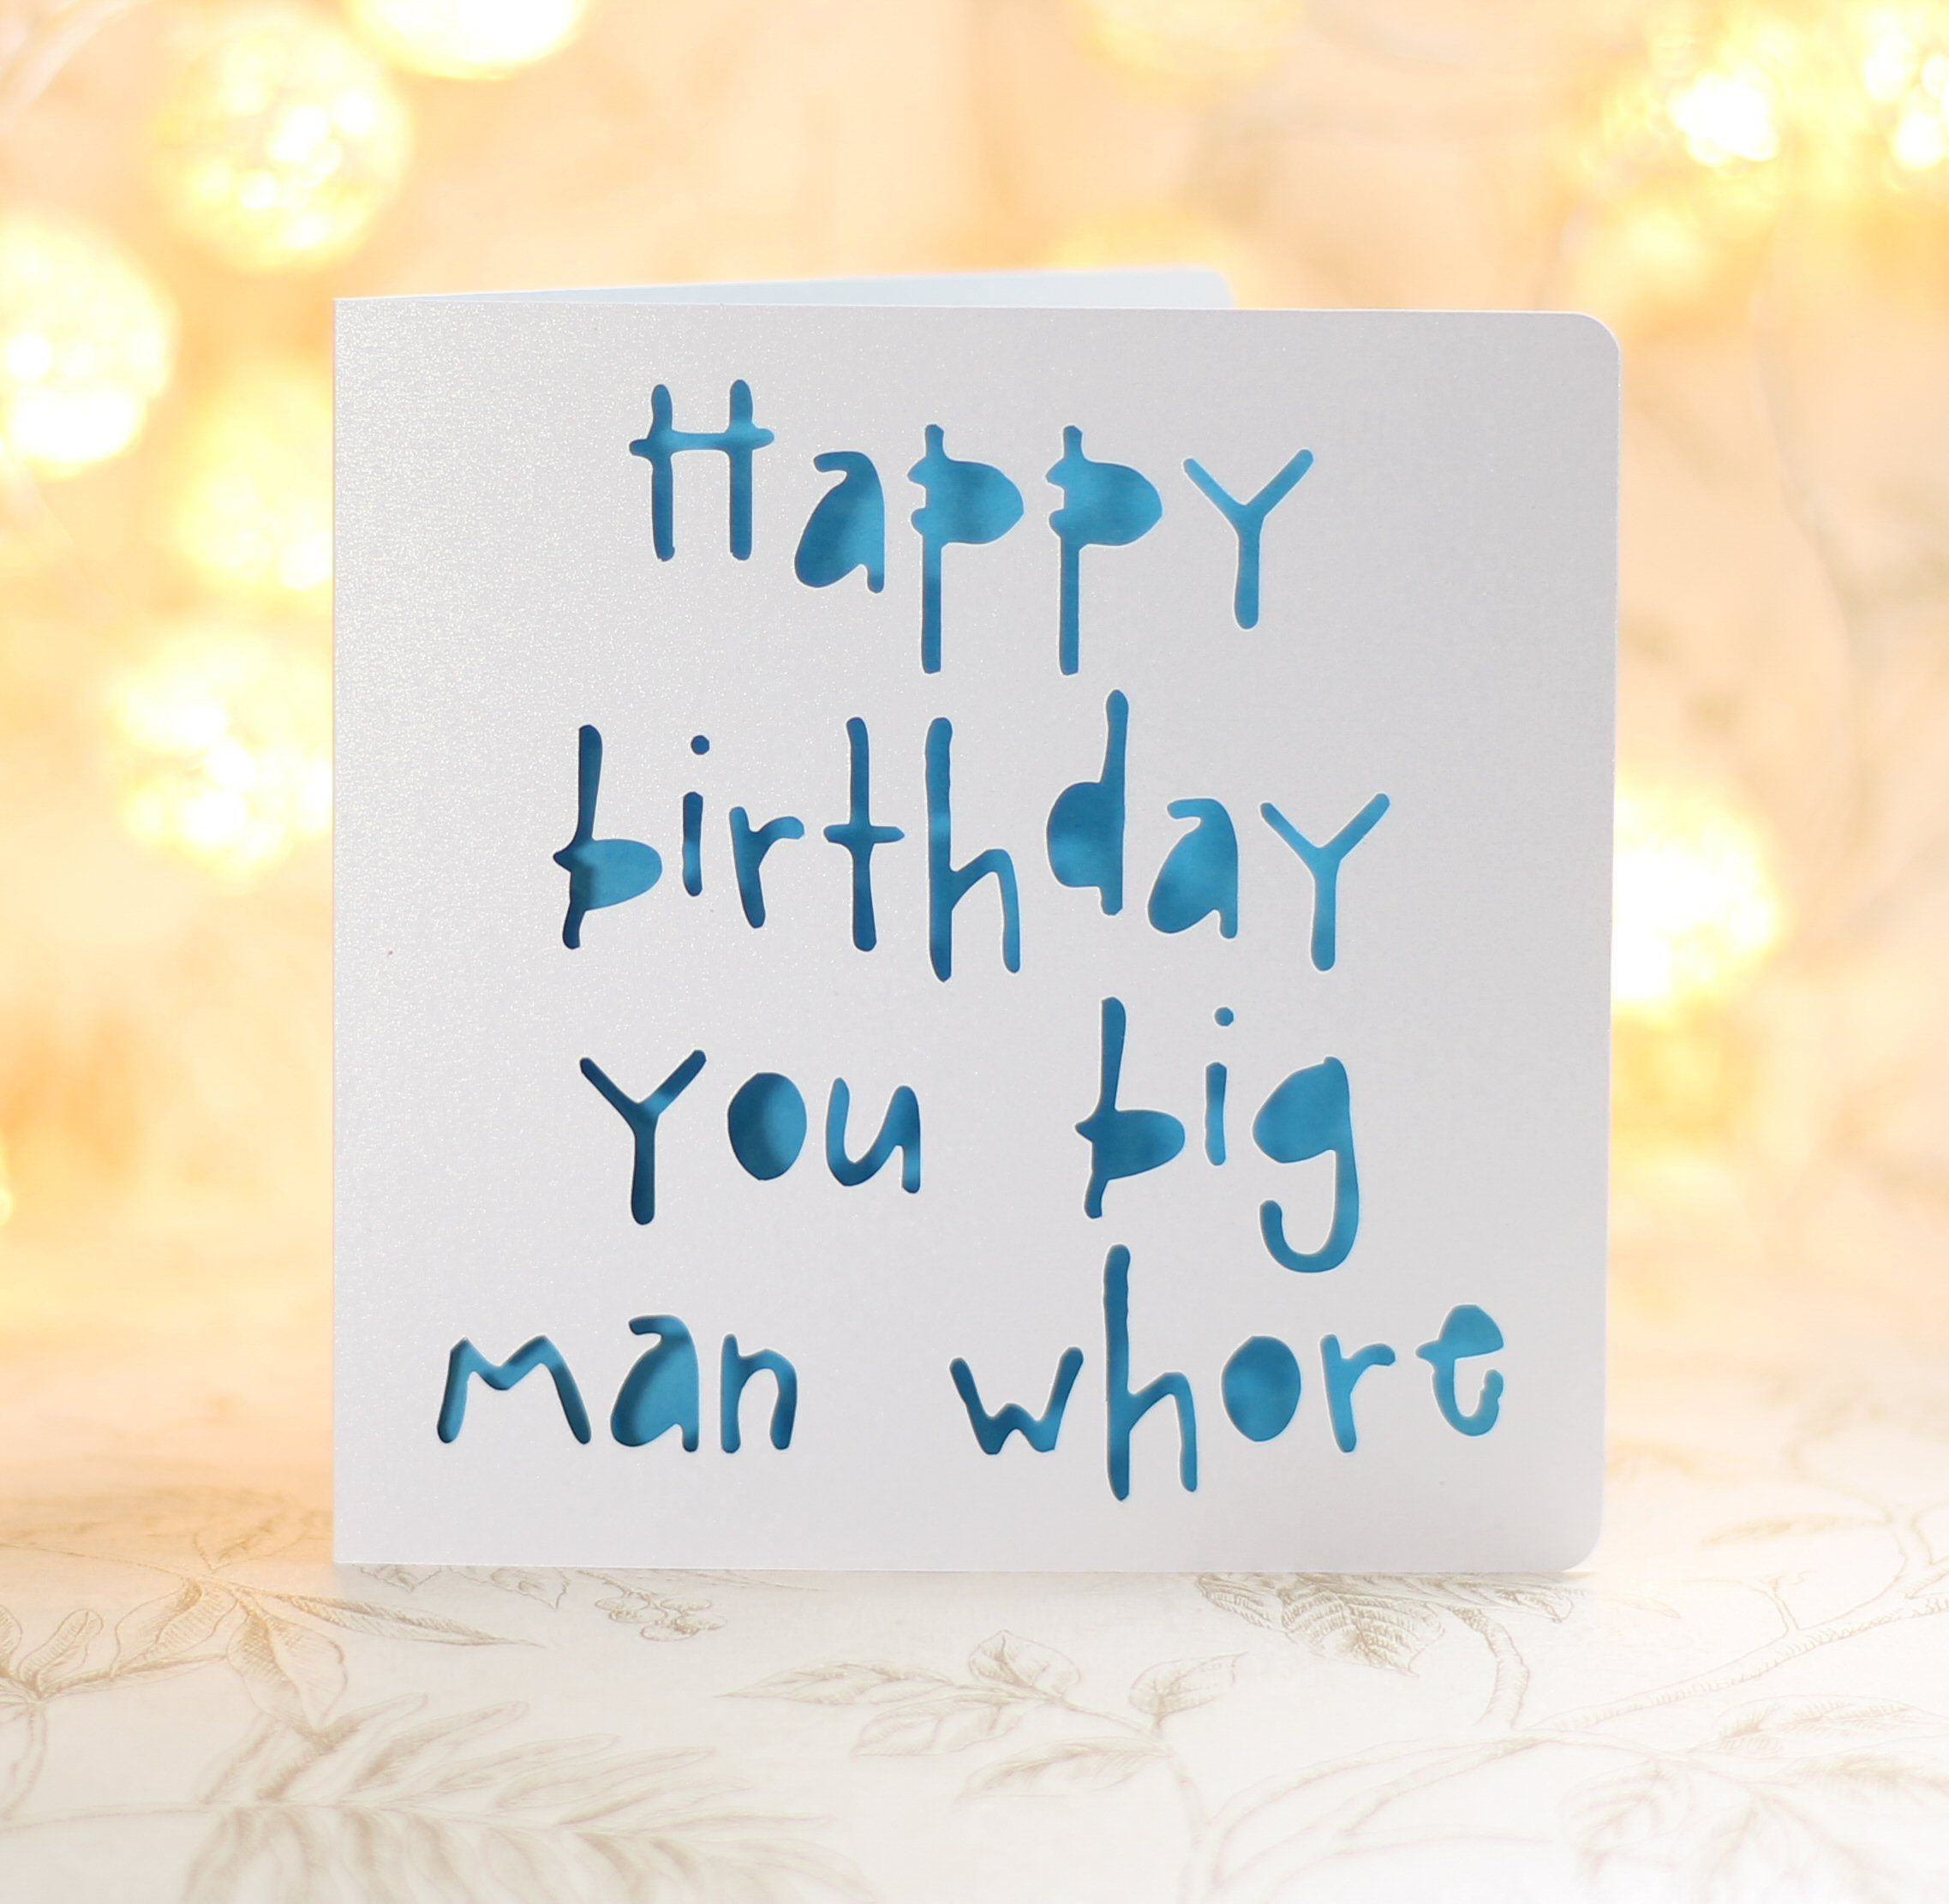 Happy Birthday You Big Man Whore card for boyfriend for husband